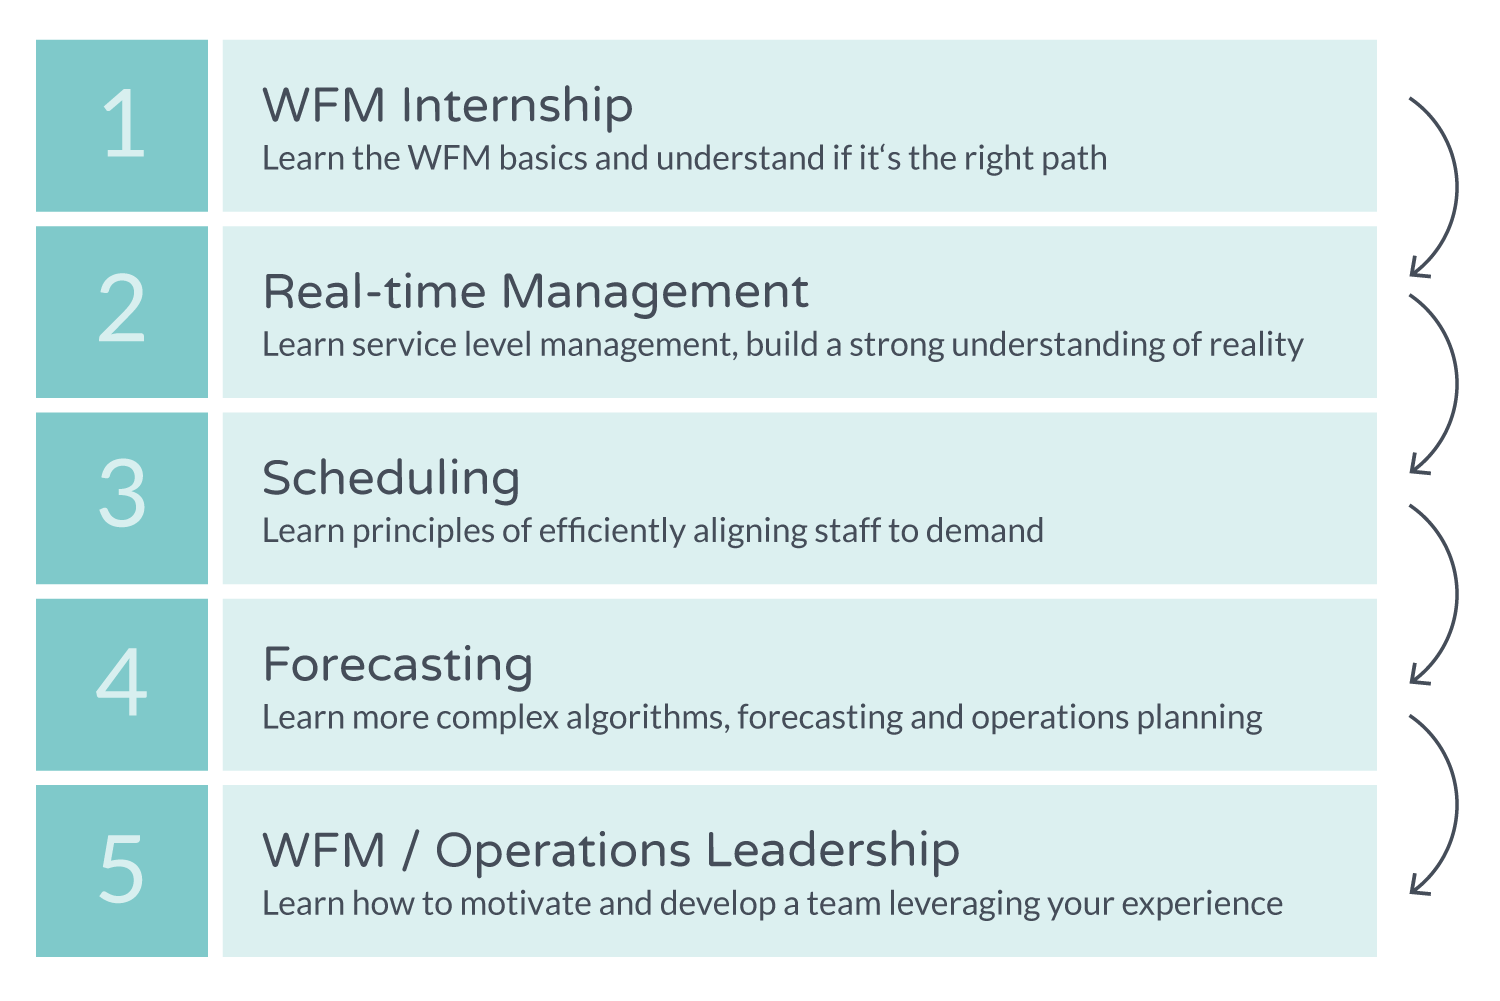 2017-01-13-develop-a-strong-wfm-team-from-within-operations-03.png